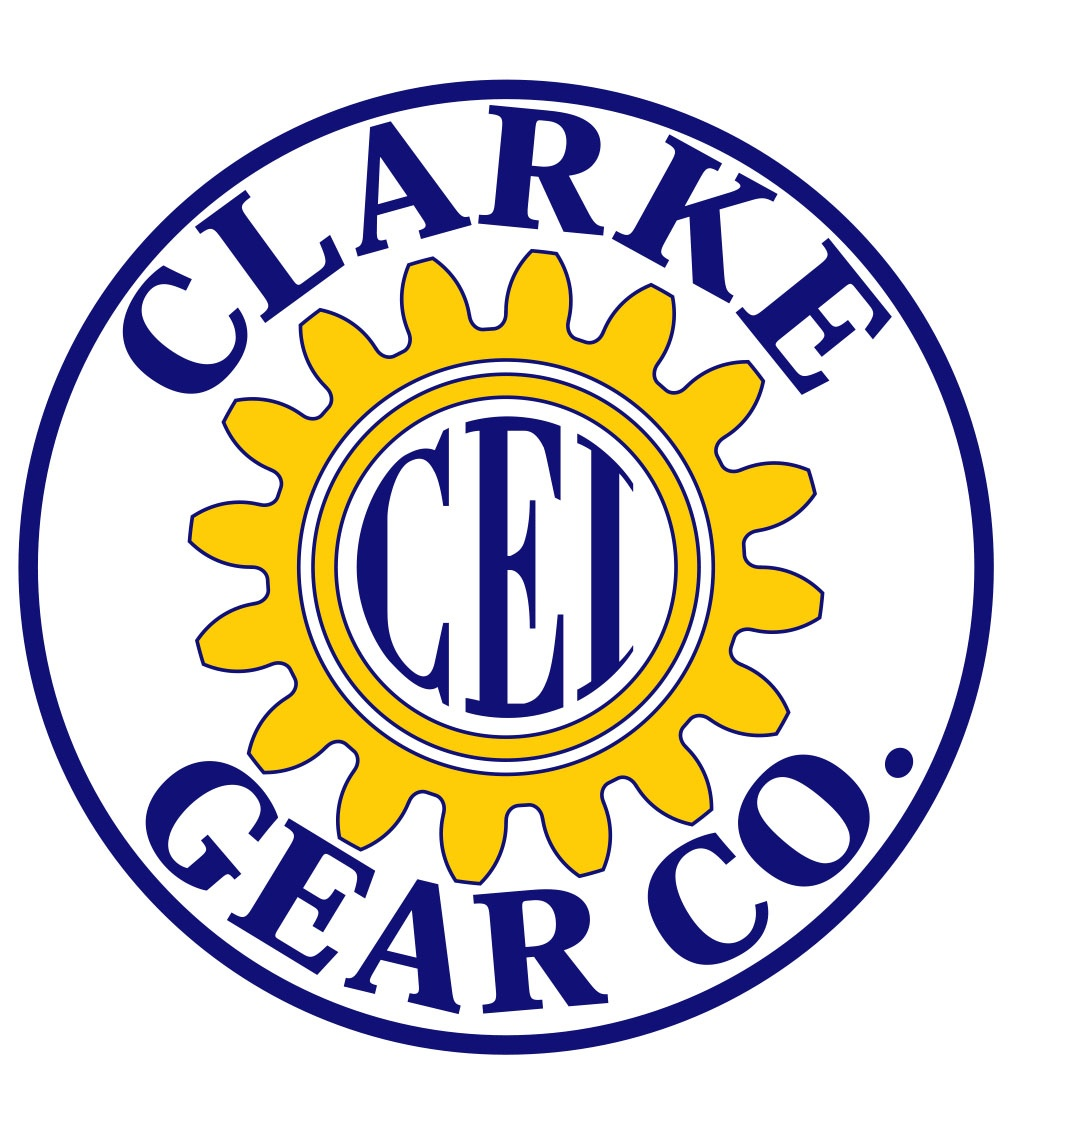 Made-in-California-manufacturer-Clarke-Engineering-Logo.jpg